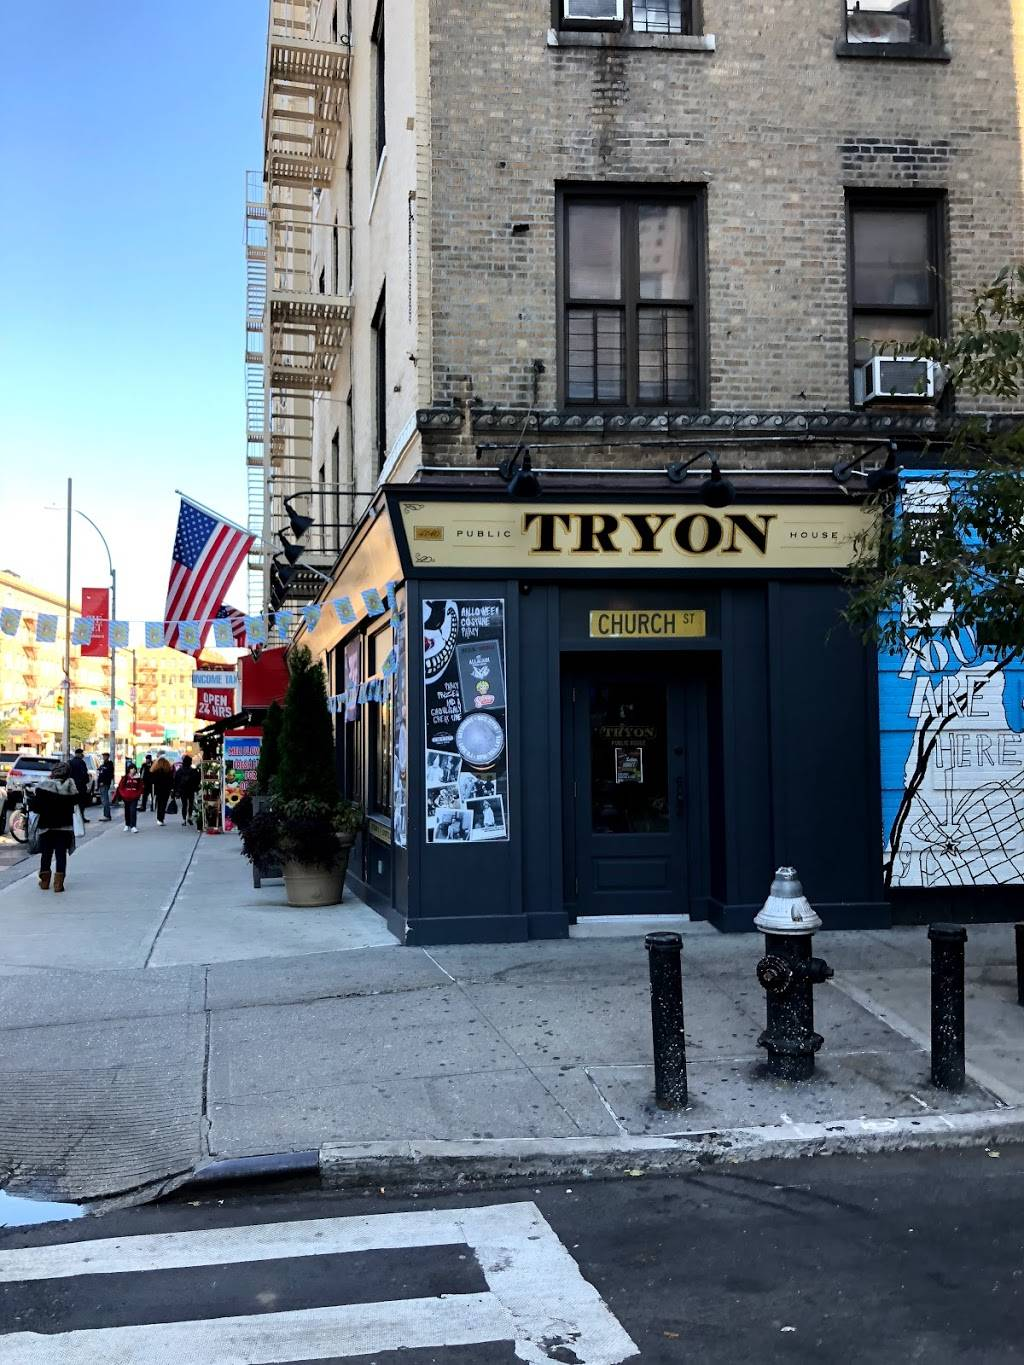 Tryon Public House | restaurant | 10040, 4740 Broadway, New York, NY 10040, USA | 6469187129 OR +1 646-918-7129